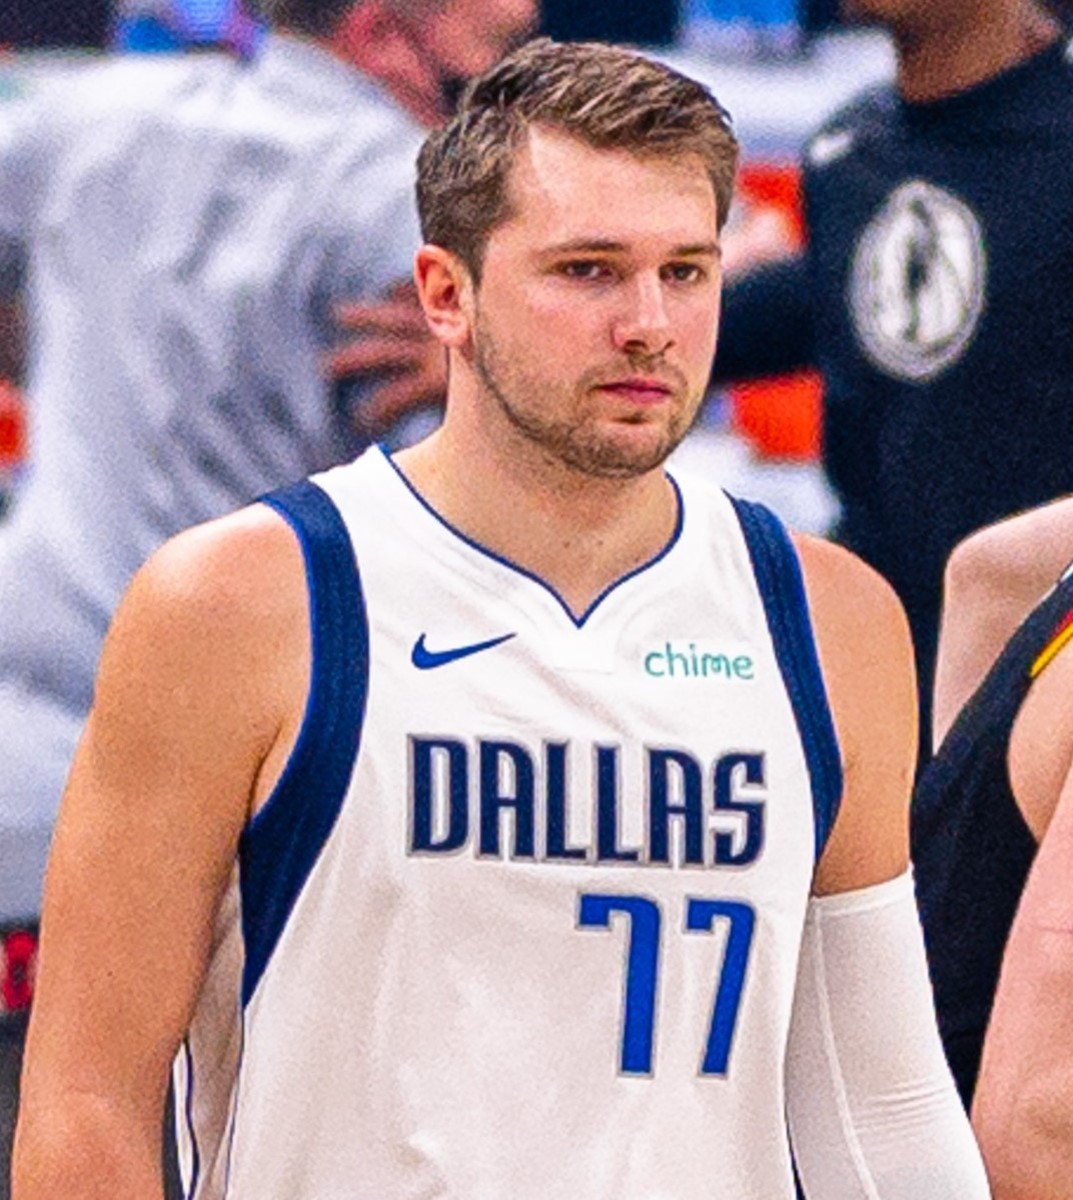 international-players-have-taken-over-the-nba